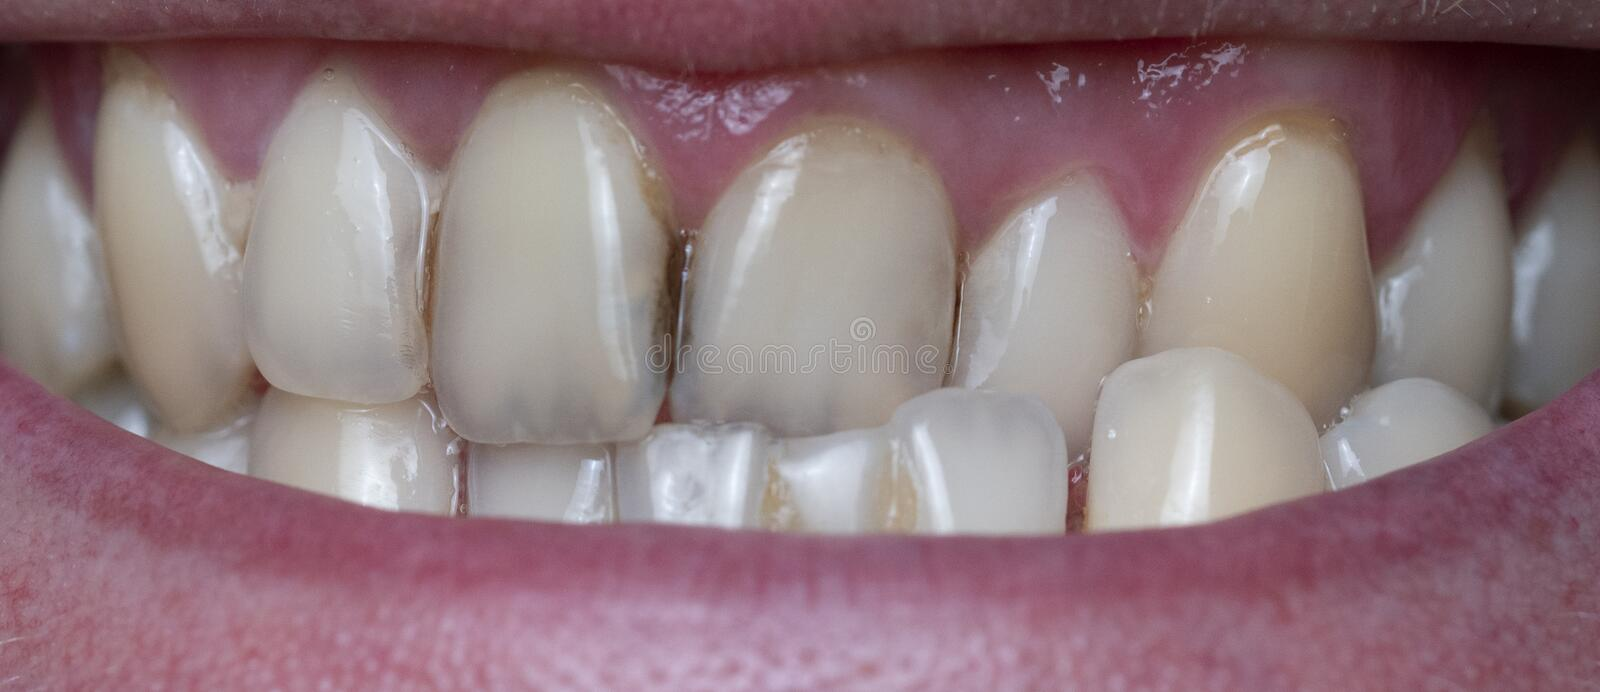 Dental plaque on man`s teeth caused by coffee residual. Closeup of dental plaque on man`s teeth caused by coffee residual royalty free stock image